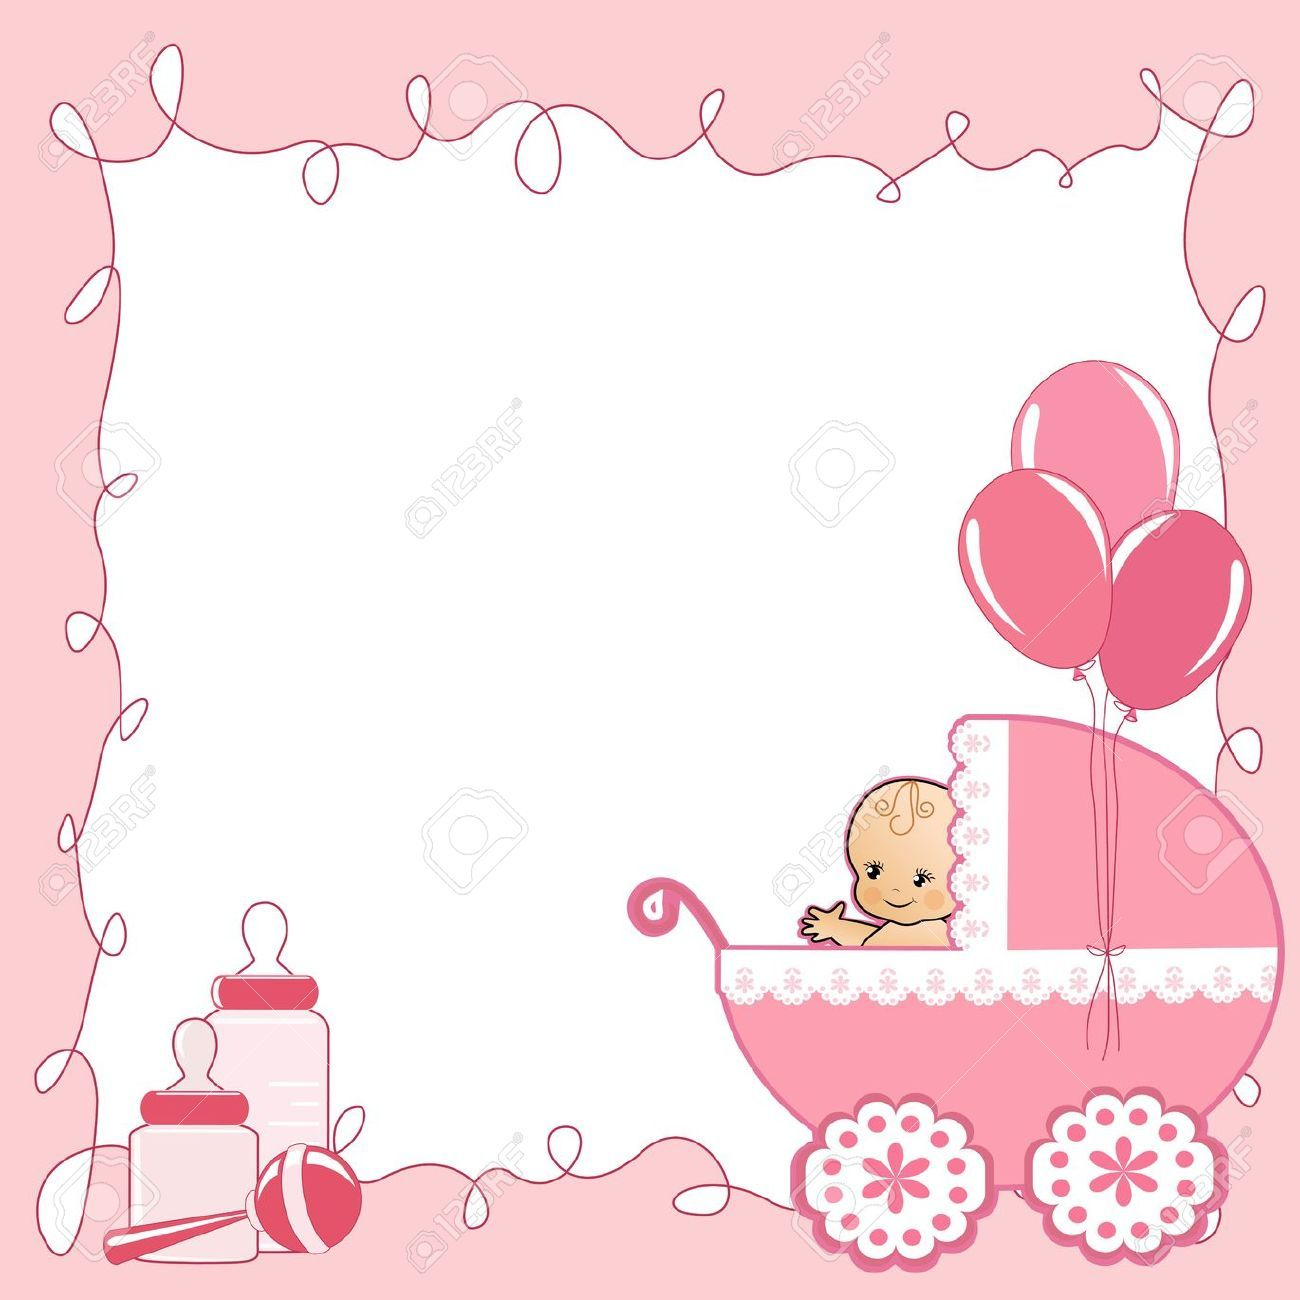 baby shower card royalty free cliparts vectors and stock - Baby Shower Cards